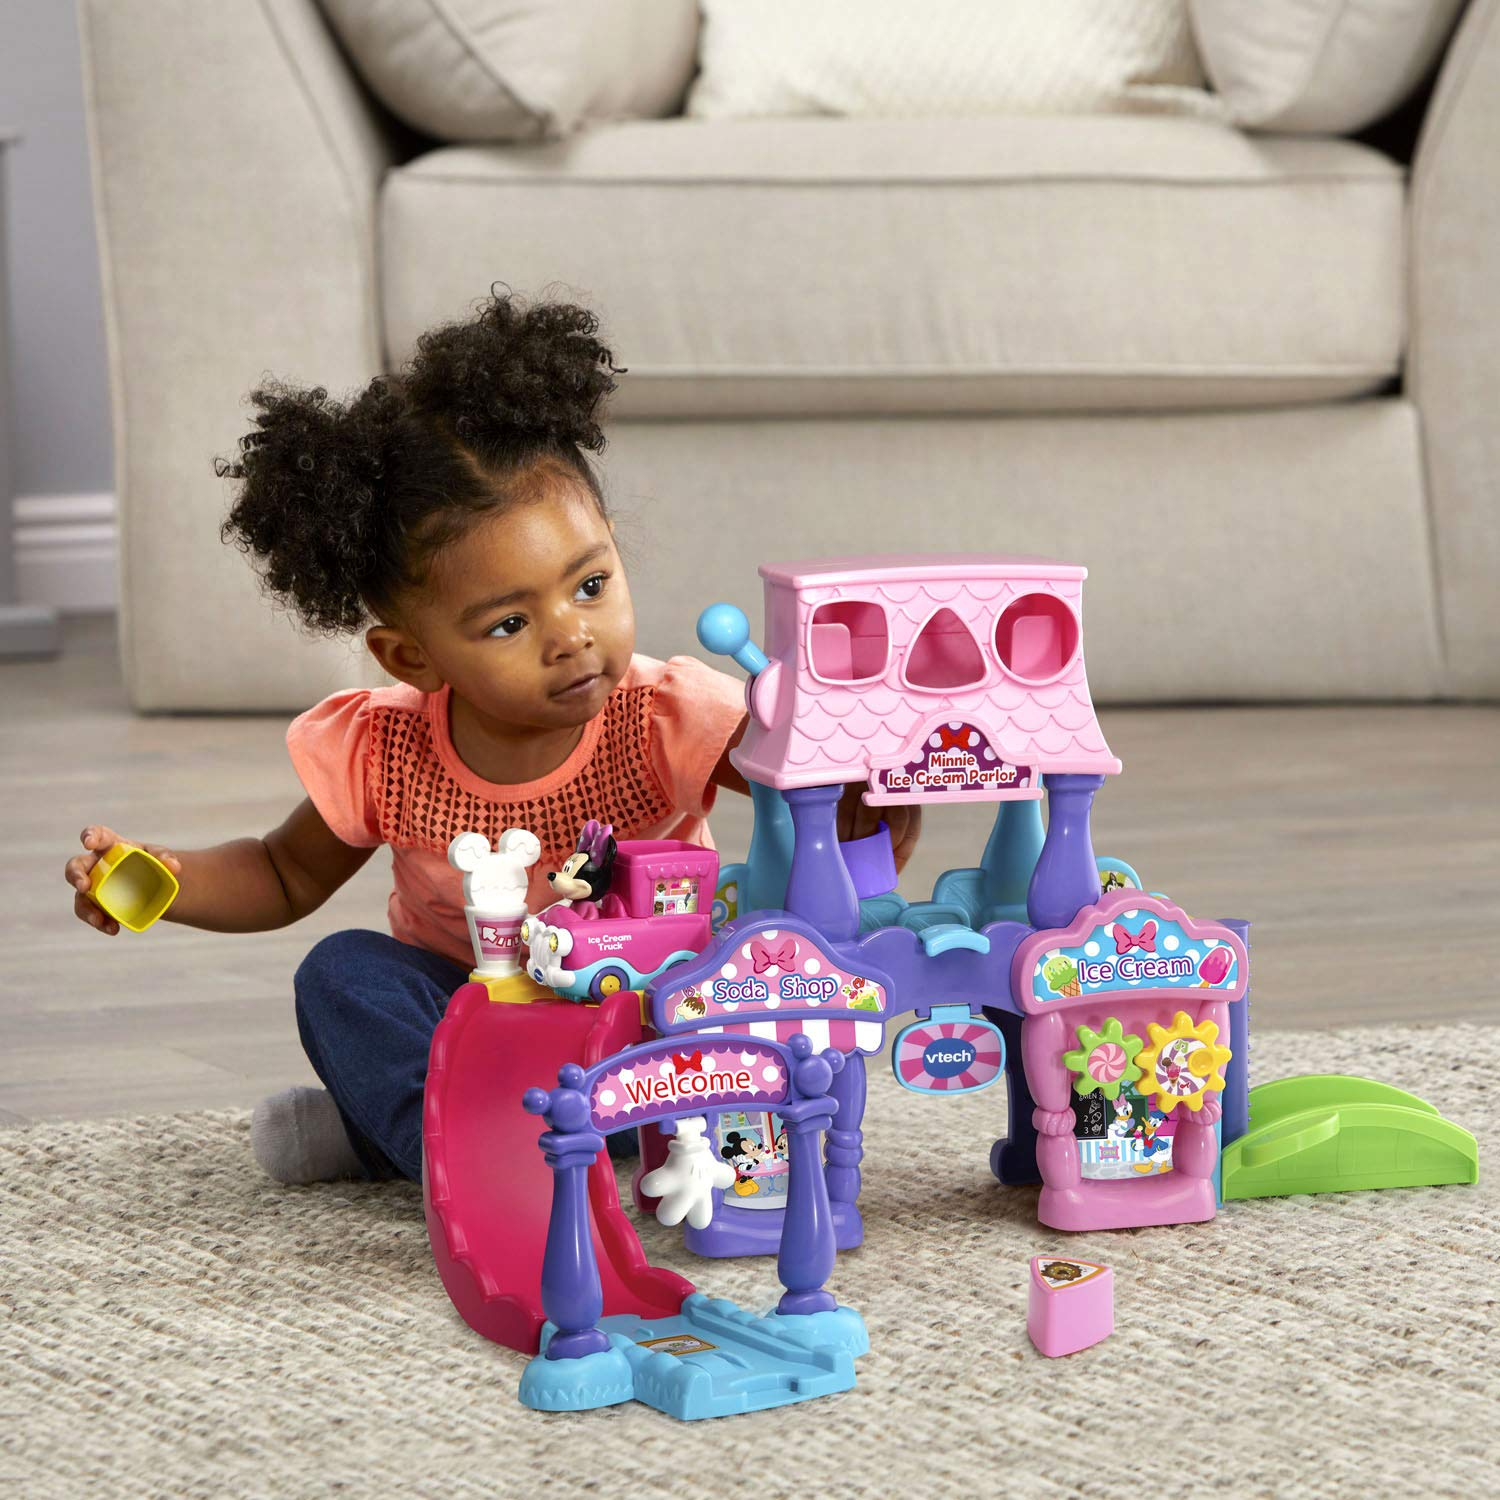 VTech Go! Go! Smart Wheels Minnie Mouse Ice Cream Parlor by VTech (Image #4)